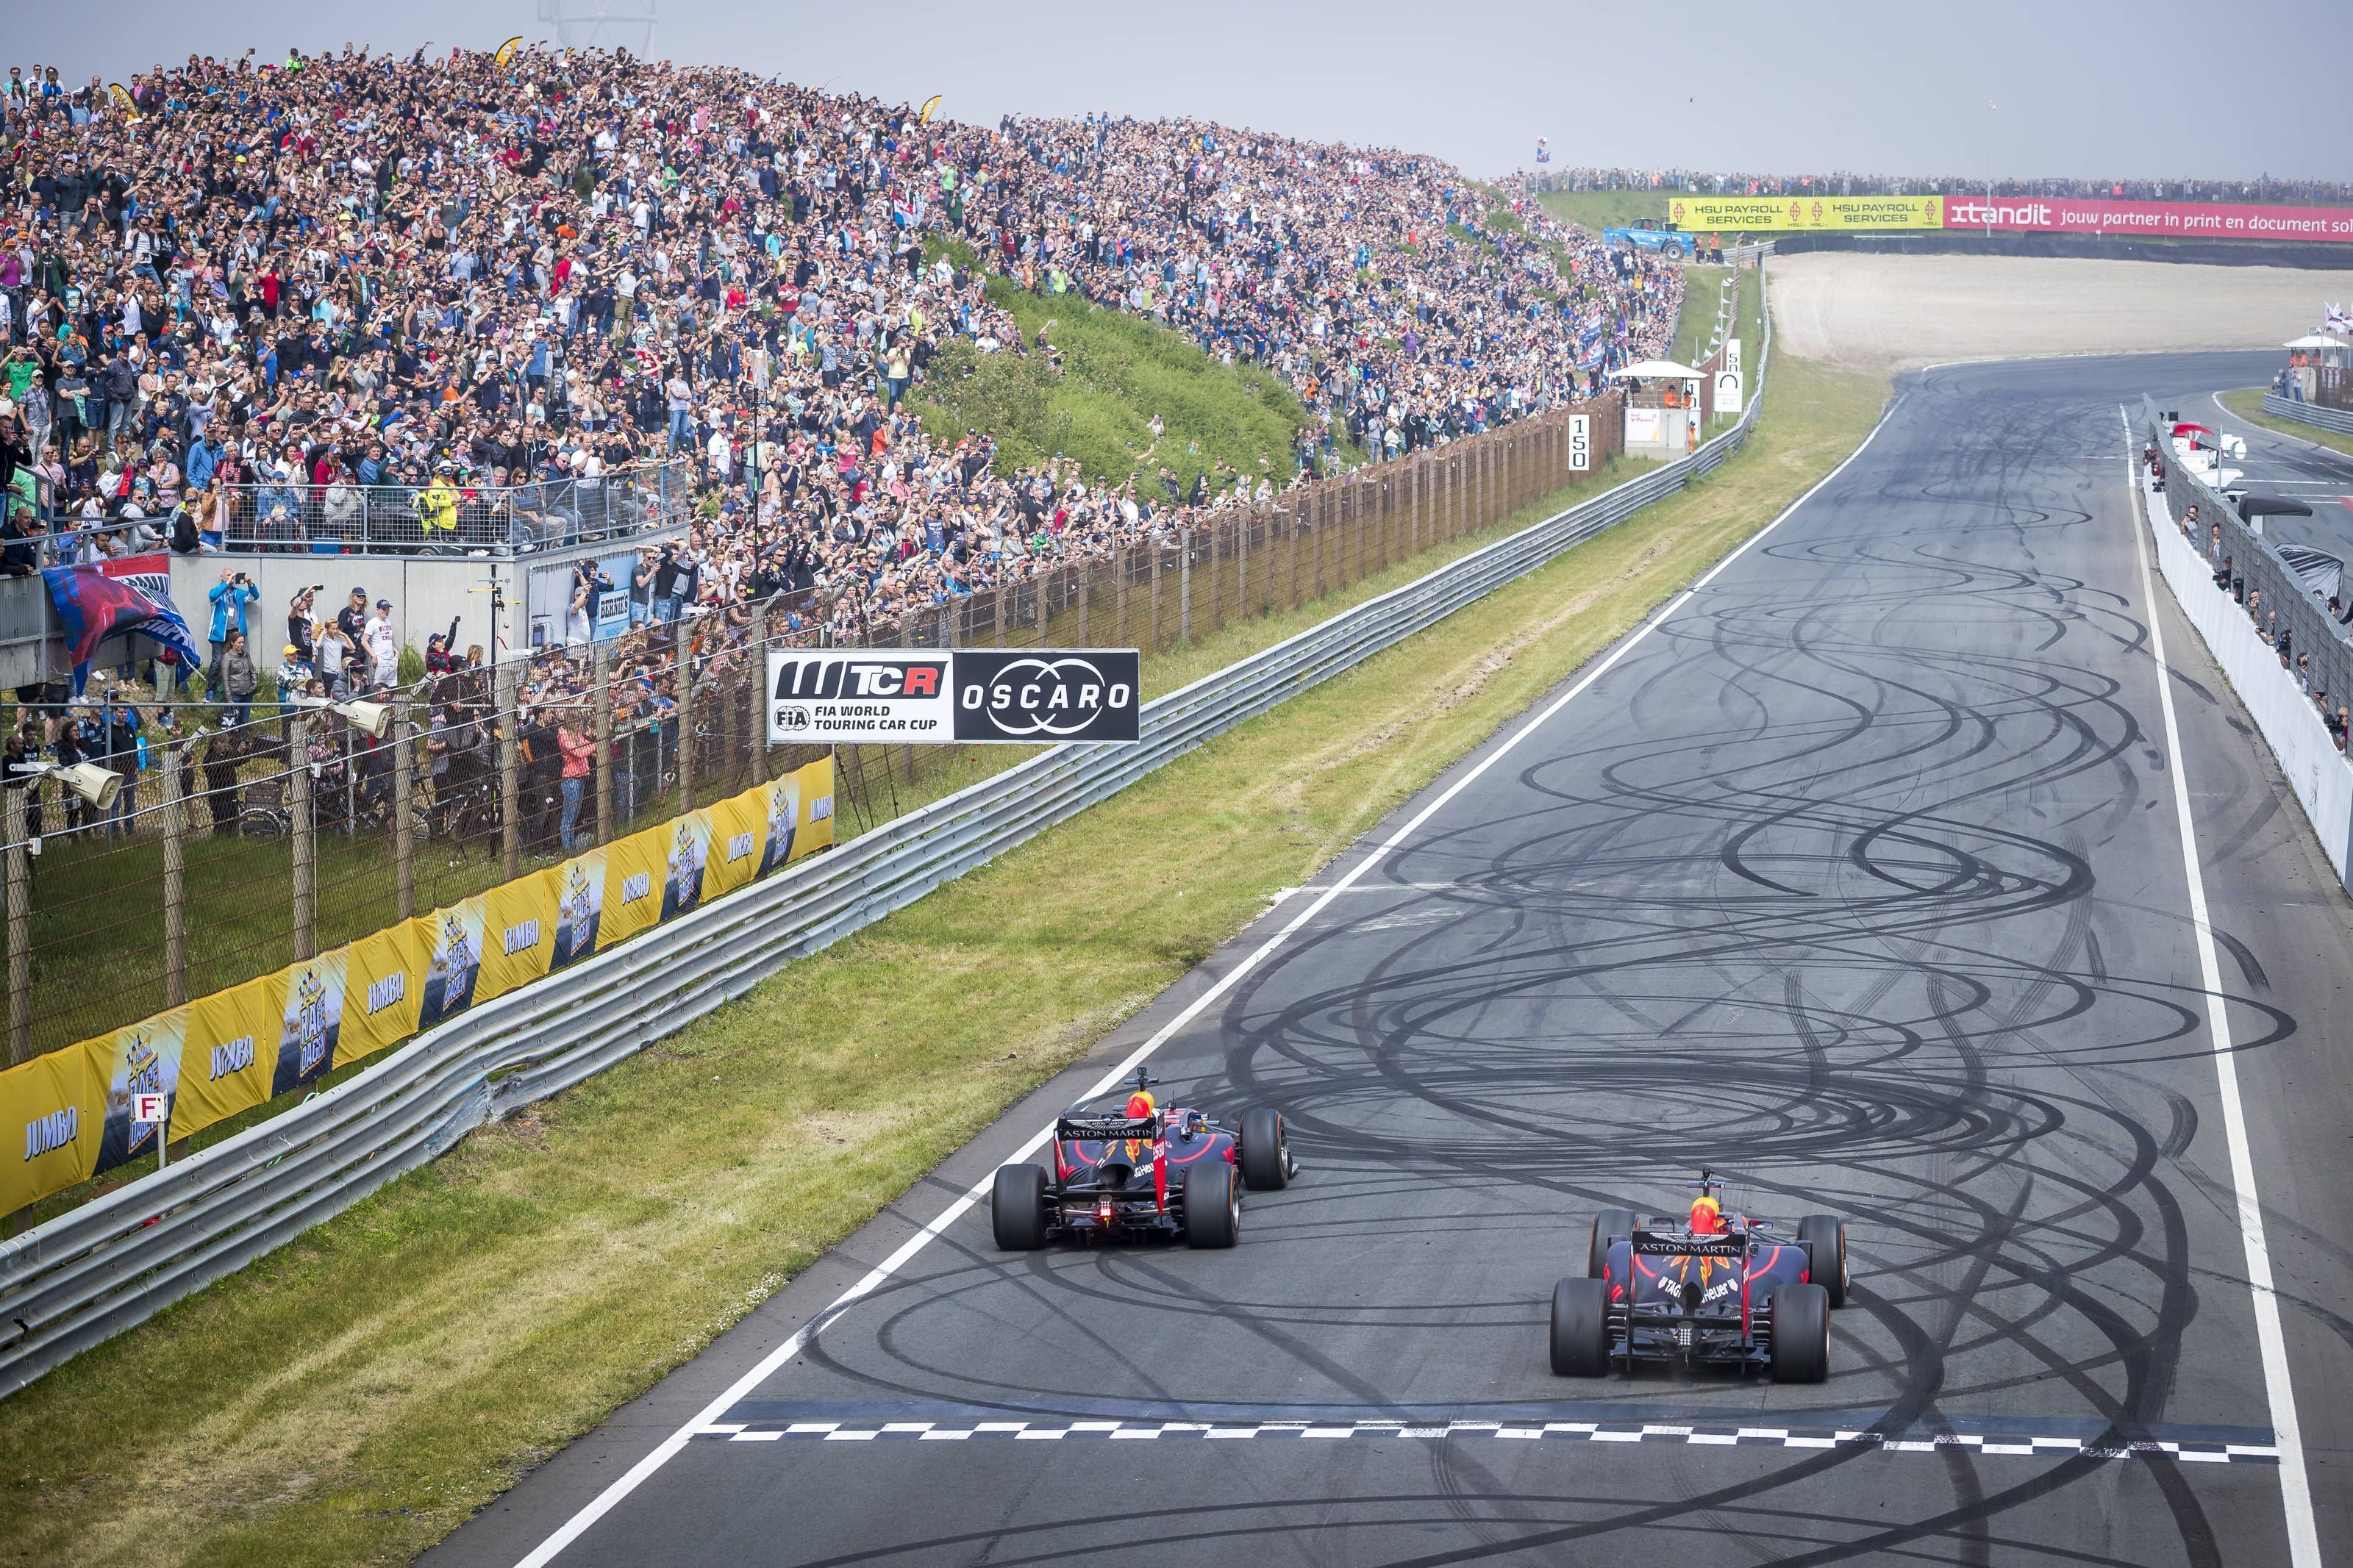 Dutch Gp Return Confirmed At Zandvoort After 35 Years From F1 2020